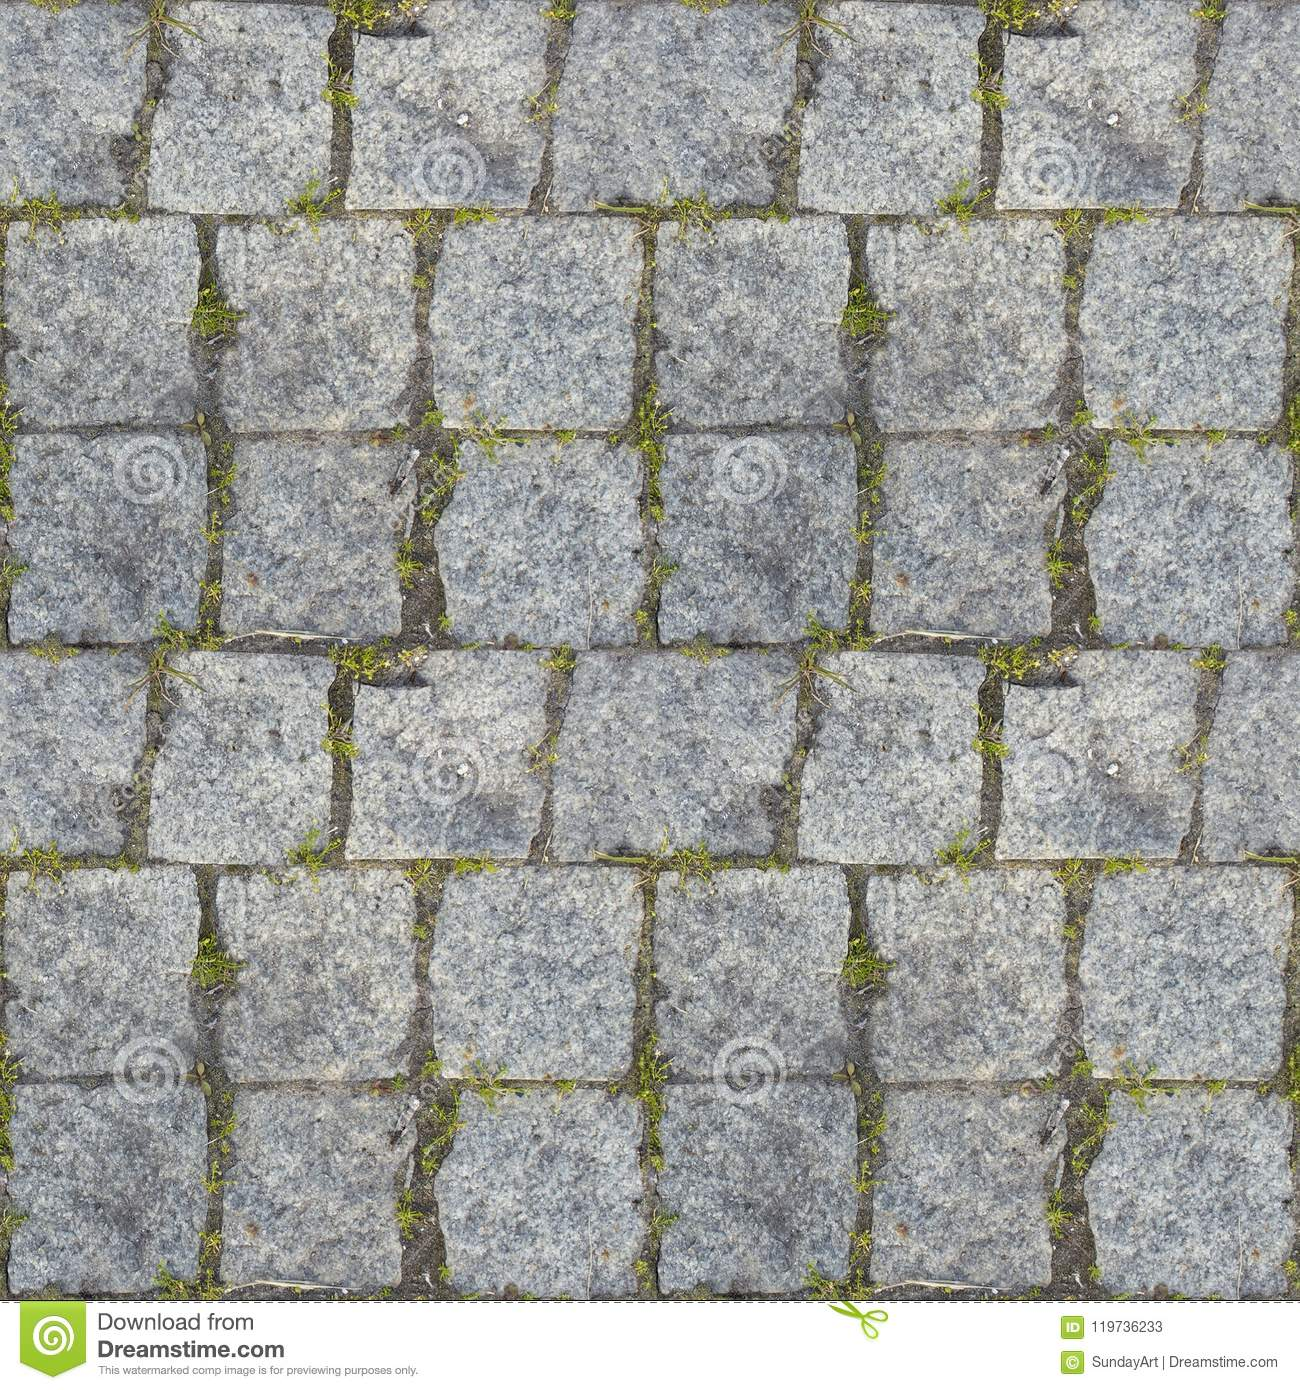 Seamless Photo Texture Of Pavement Tile From Stone With Grass Stock